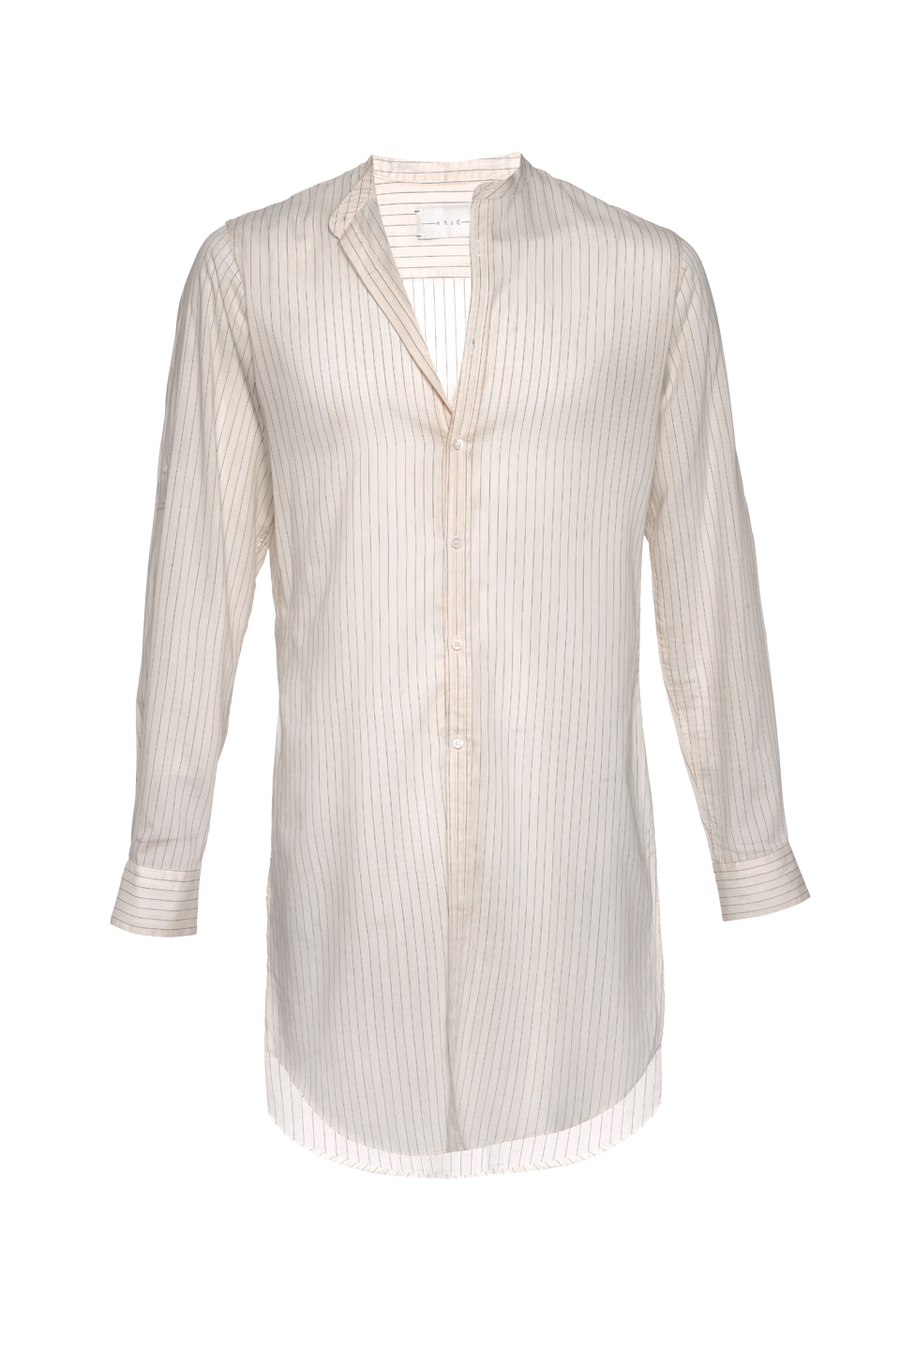 THE XAVIER STRIPED TUNIC SHIRT